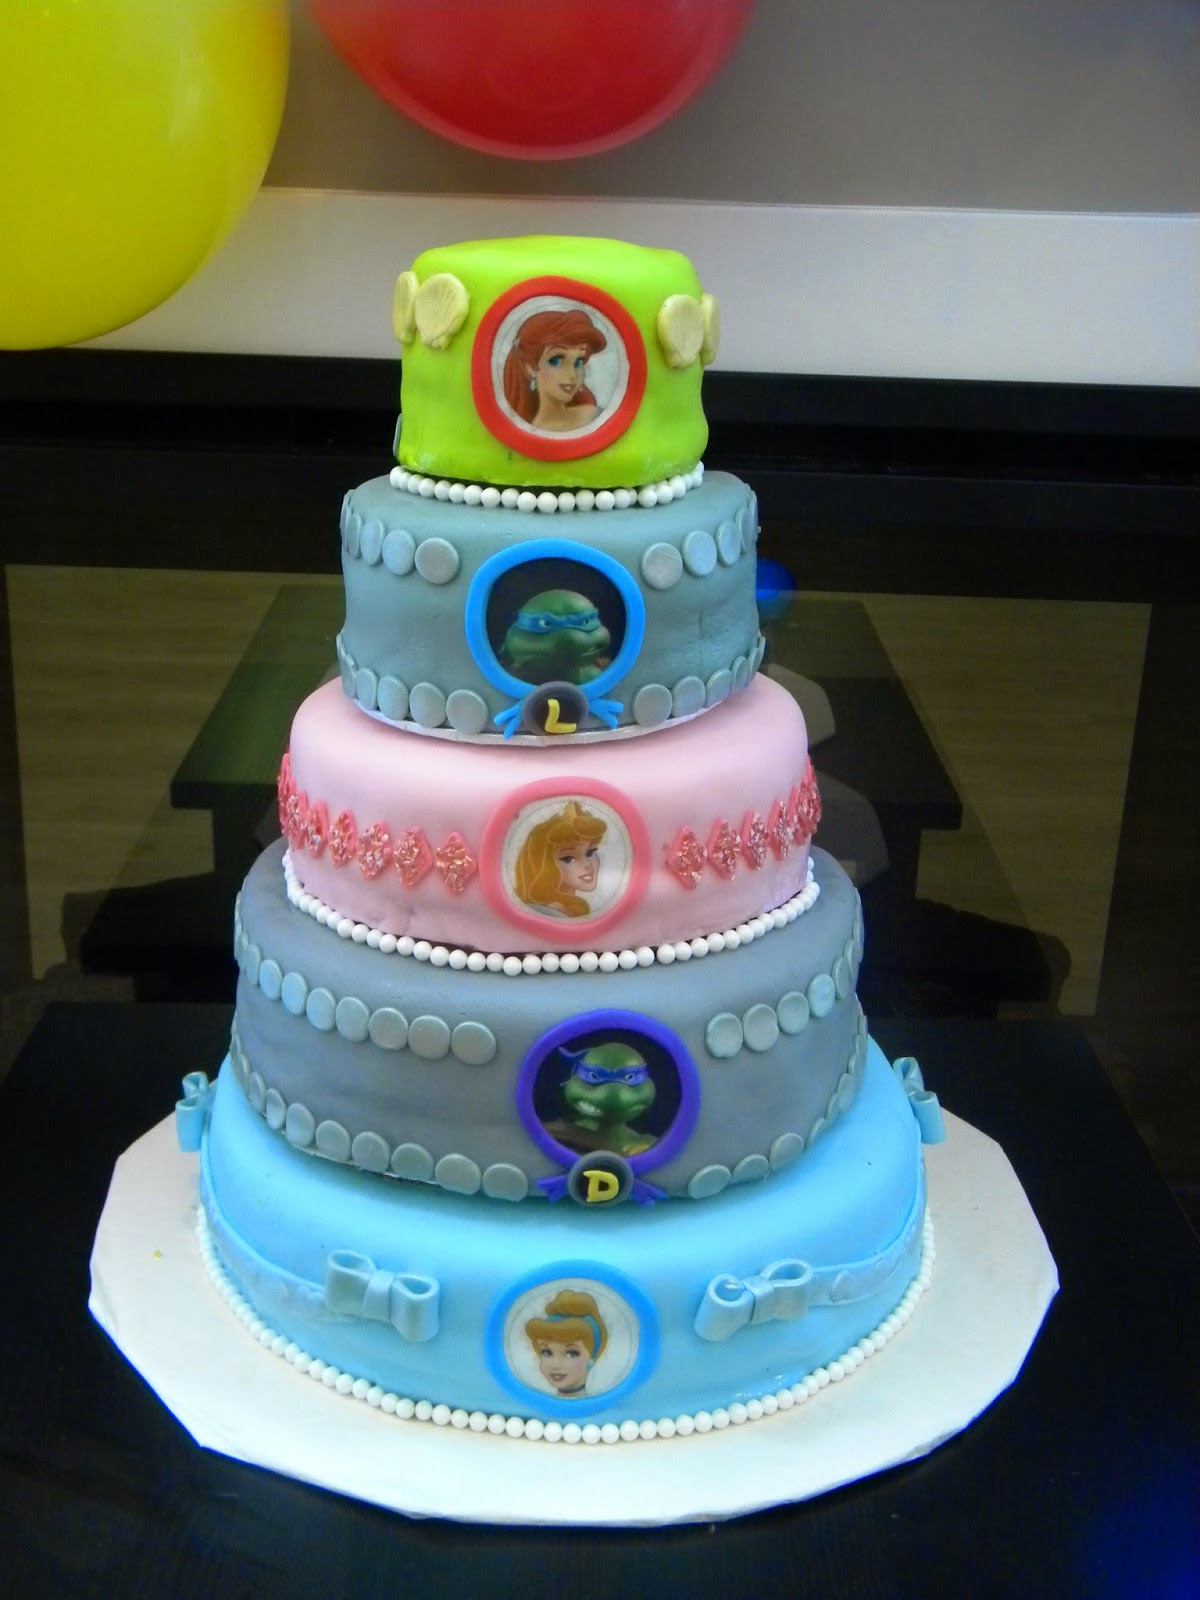 Disney Princess and Teenage Mutant Ninja Turtle Cake